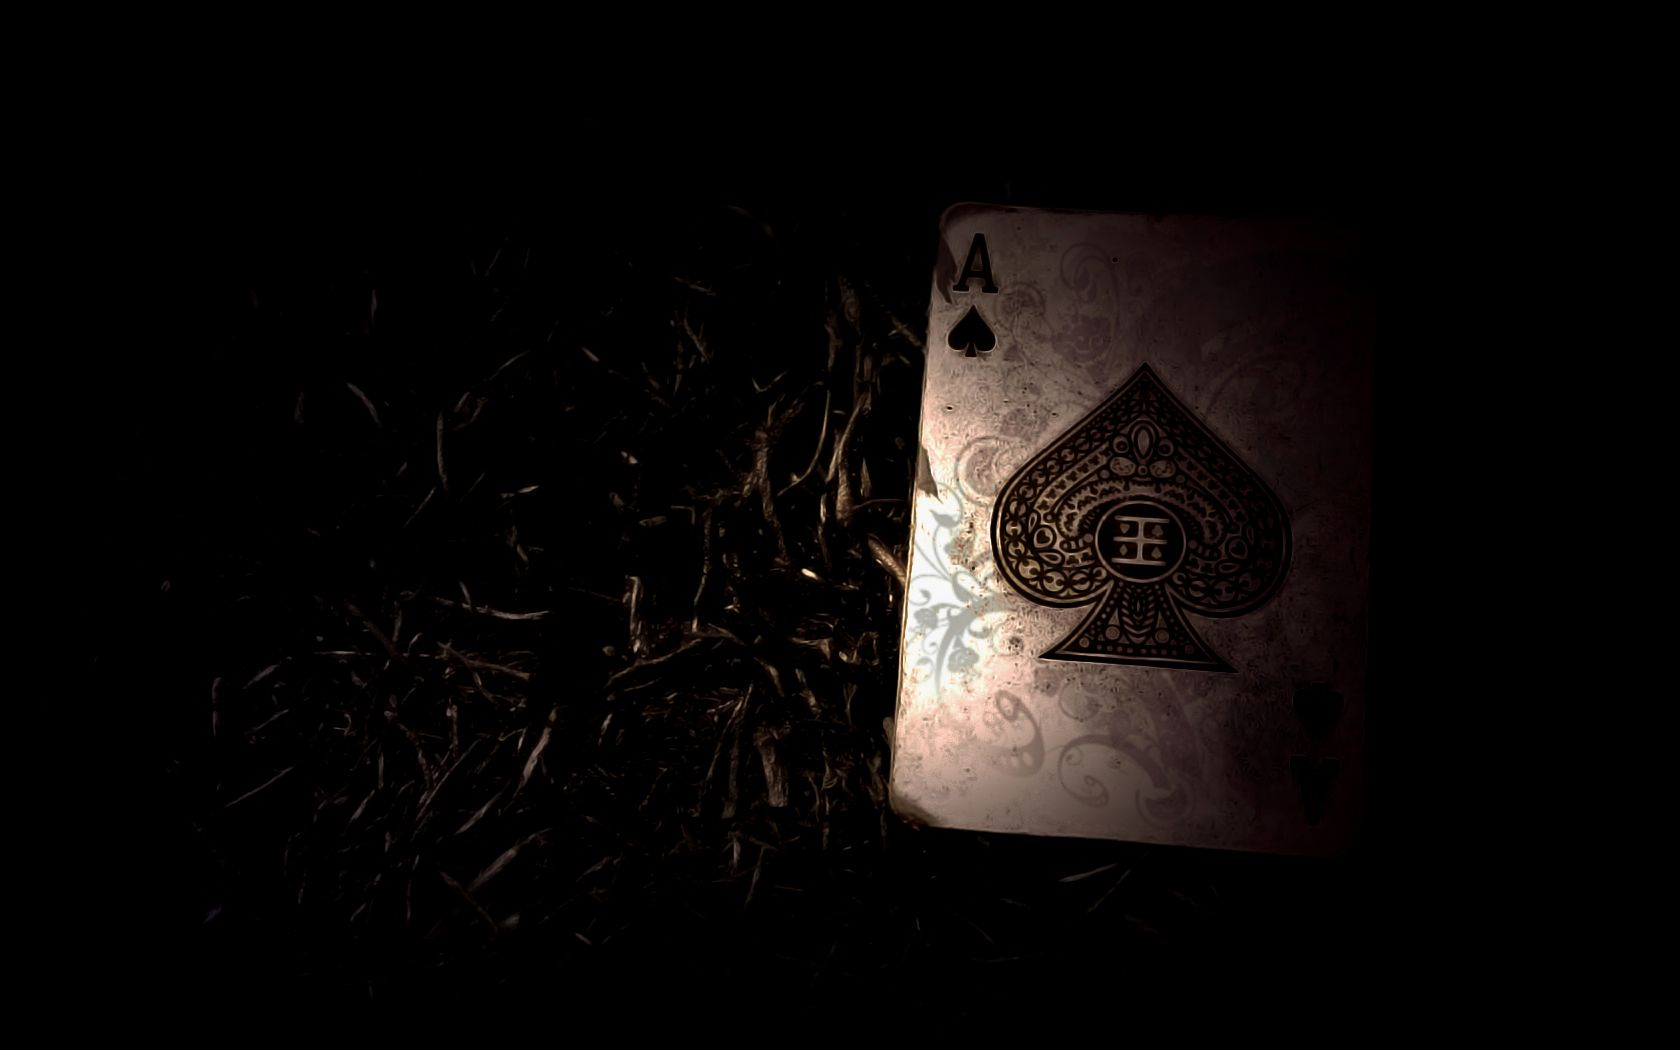 a spade card wallpaper  Ace of Spades Wallpaper HD - WallpaperSafari in 7 | Cards ...